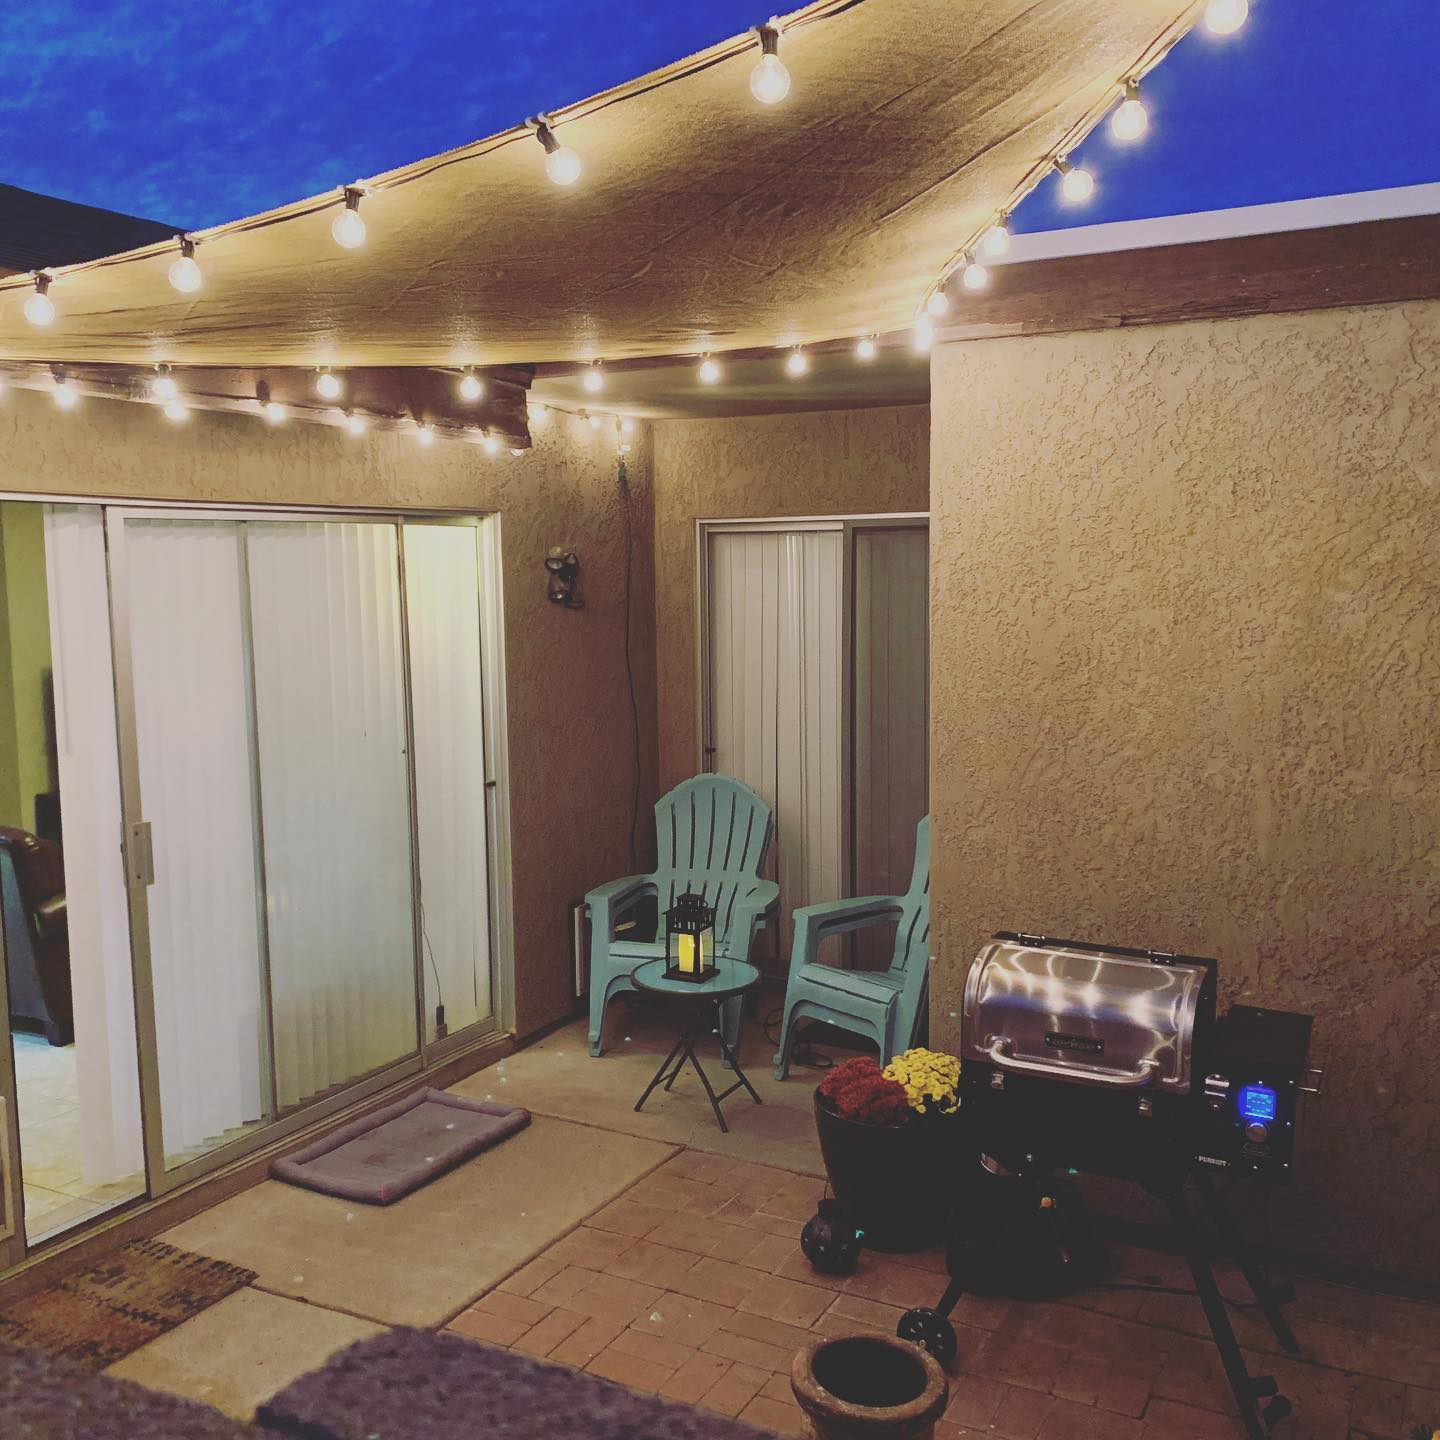 Cozy patio. Cozy smoker. Cozy plants.